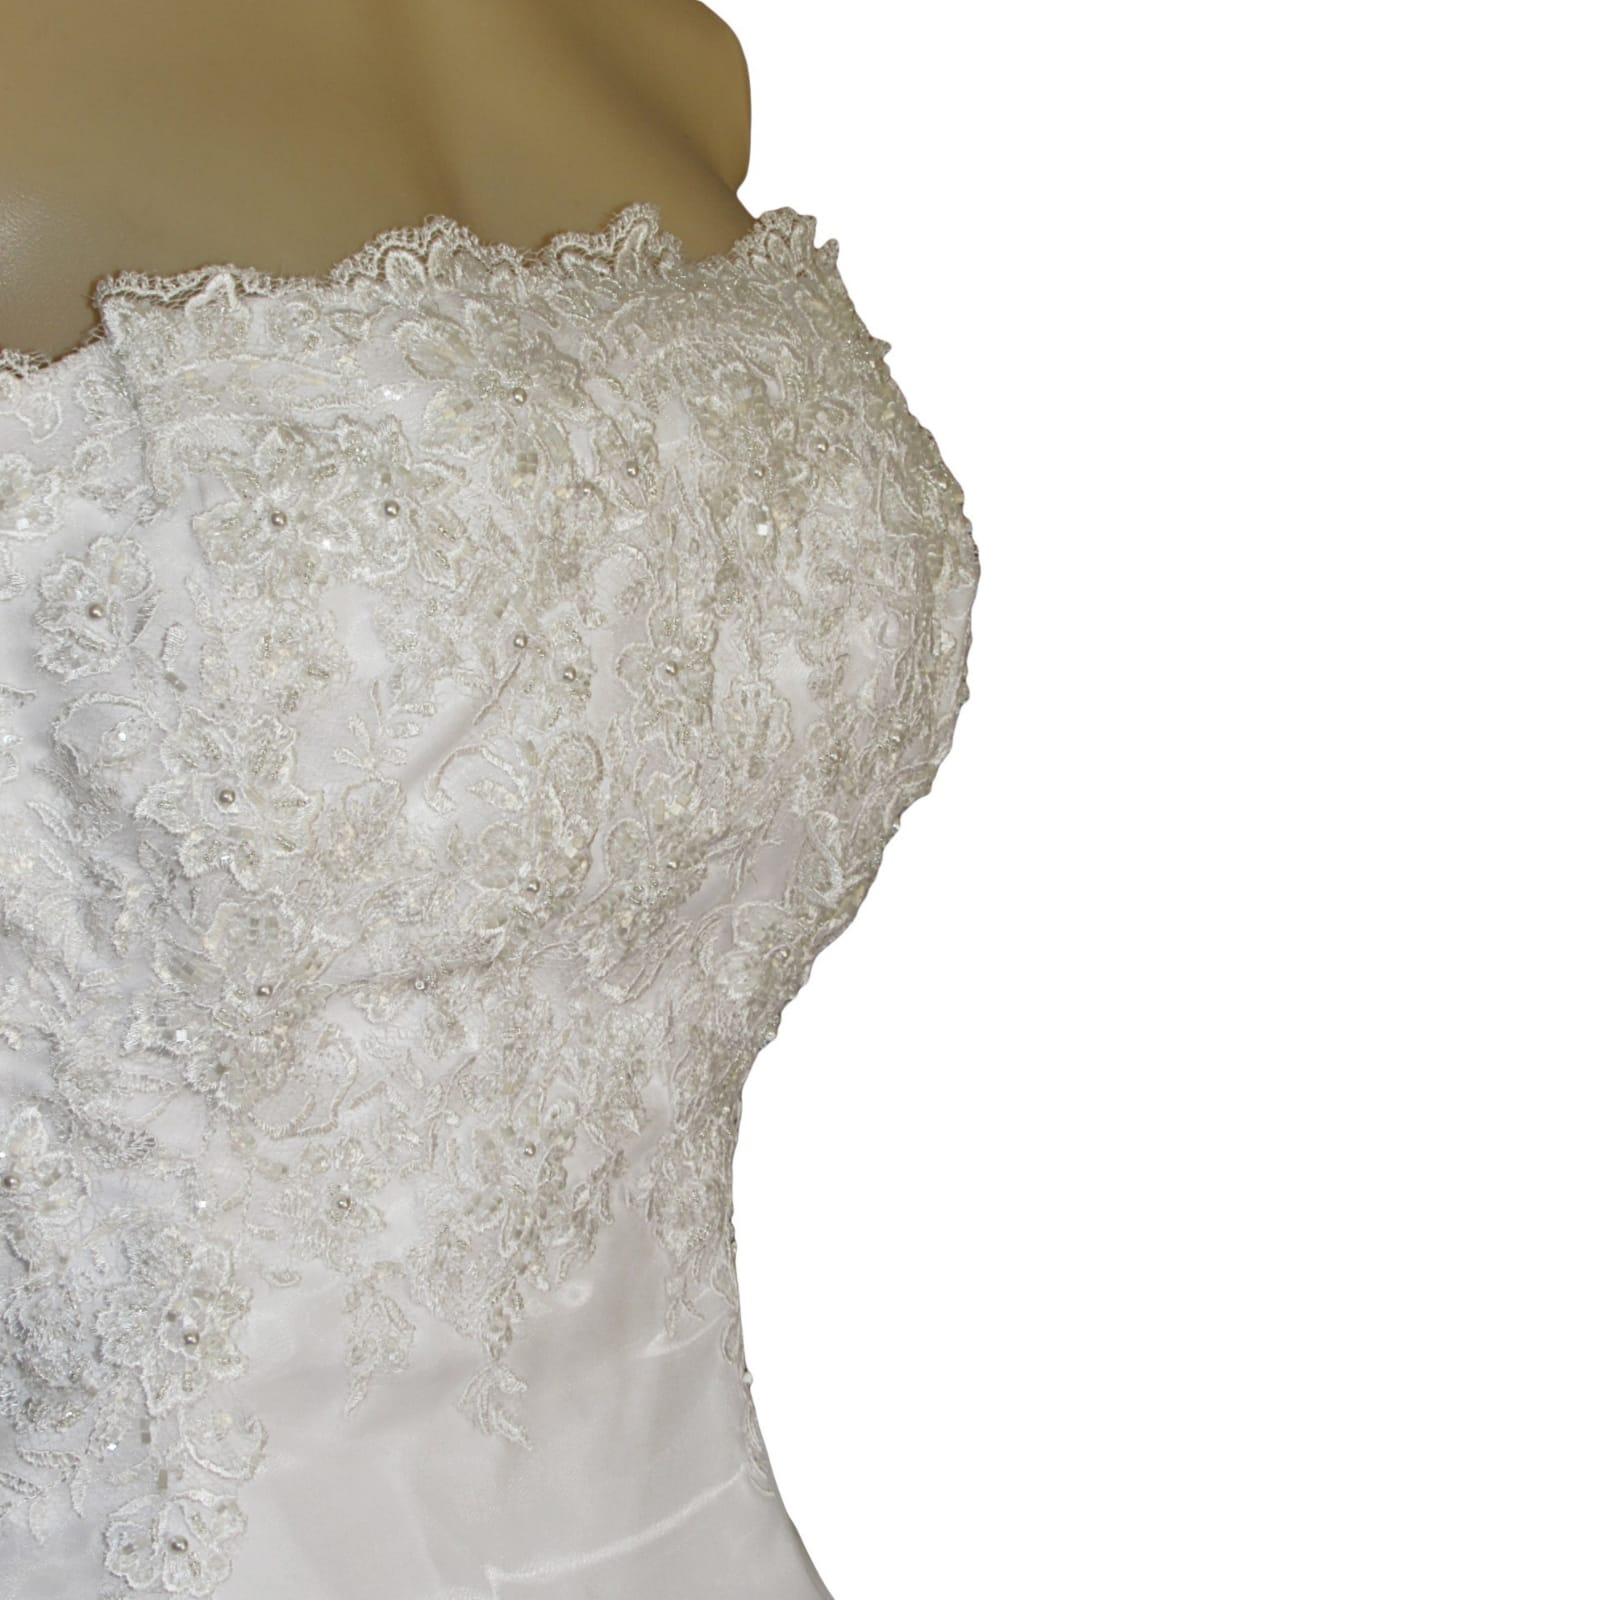 White organza a-line boob tube custom made wedding ball gown 8 white, organza, a-line, boob tube, custom-made wedding ball gown. Bodice detailed with lace. Lace-up back. With a train & removable off-shoulder pleated organza straps detailed with lace. With shimmer blush length veil.